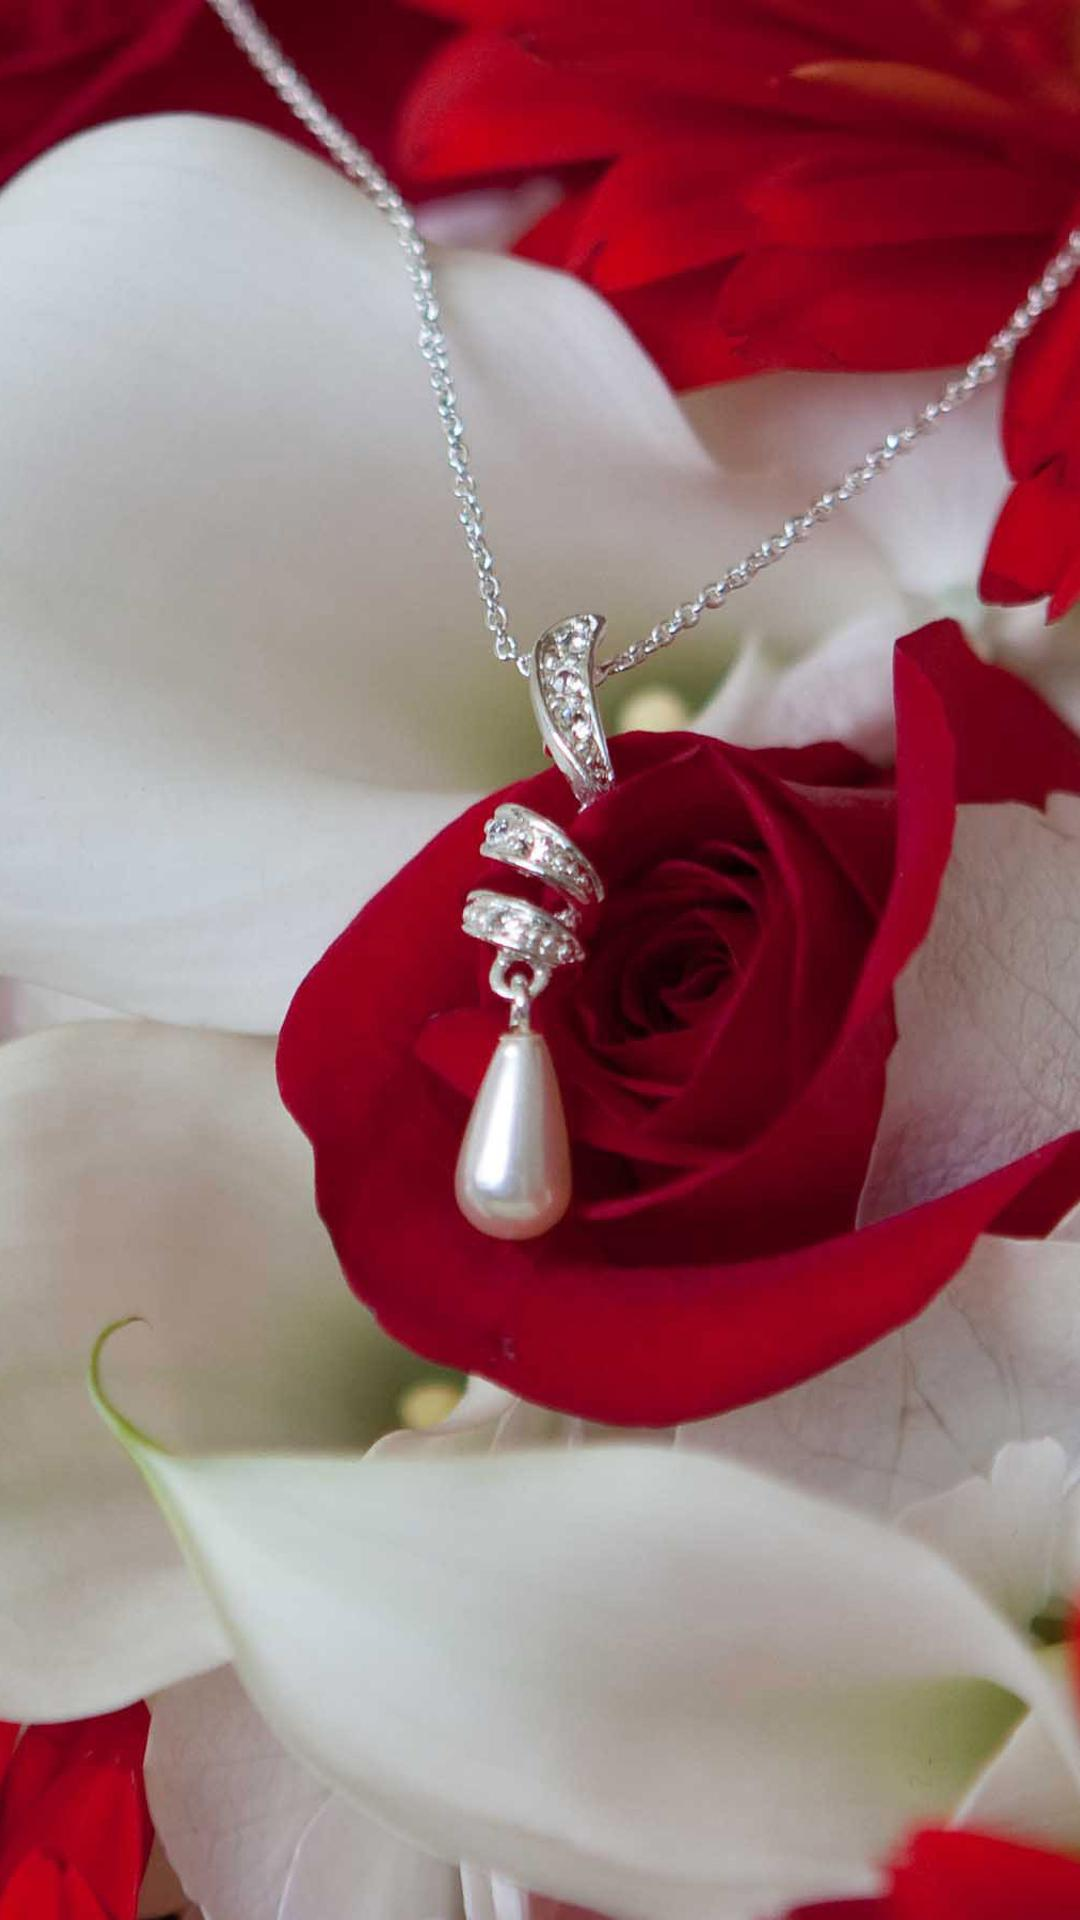 A necklace with a pearl on the white and red flowers wallpaper a necklace with a pearl on the white and red flowers wallpaper download 1080x1920 mightylinksfo